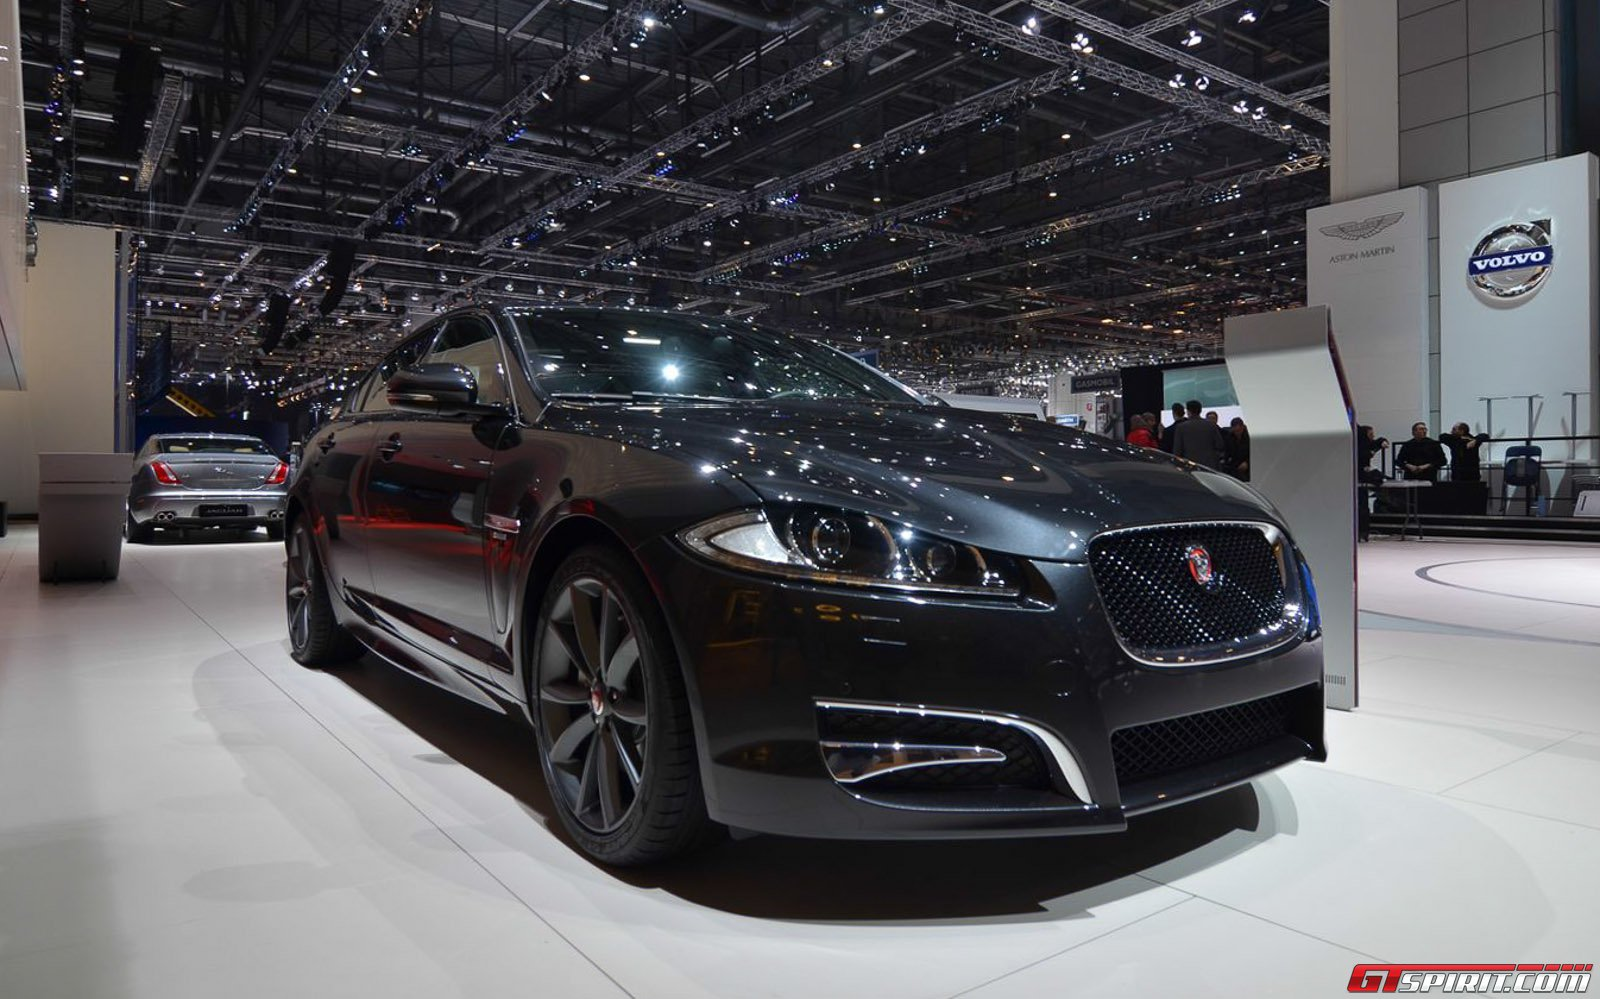 geneva 2014 jaguar xf r sport gtspirit. Black Bedroom Furniture Sets. Home Design Ideas